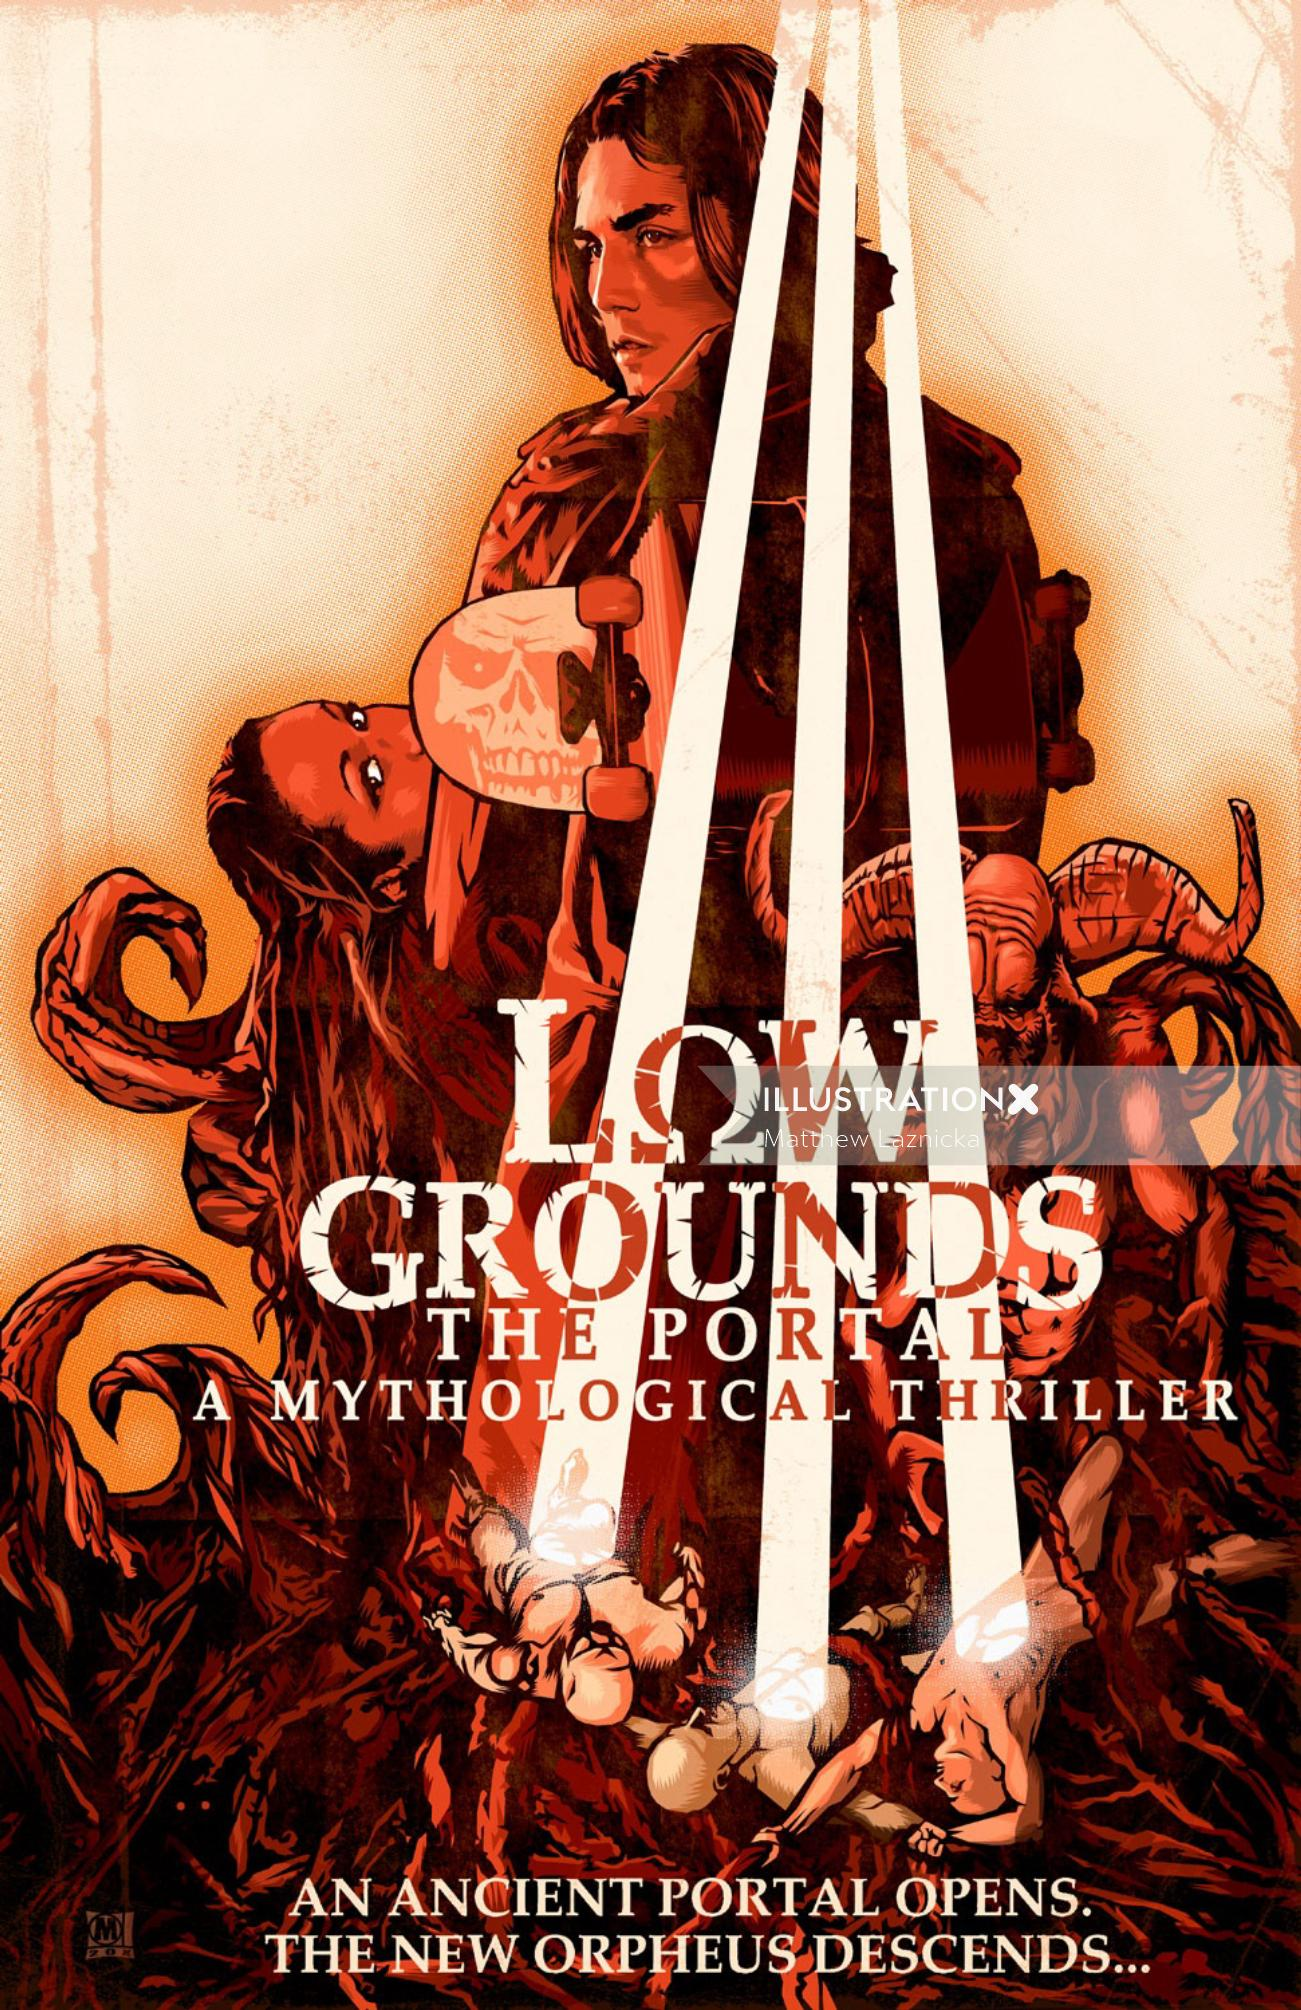 Illustration of Lowgrounds film poster